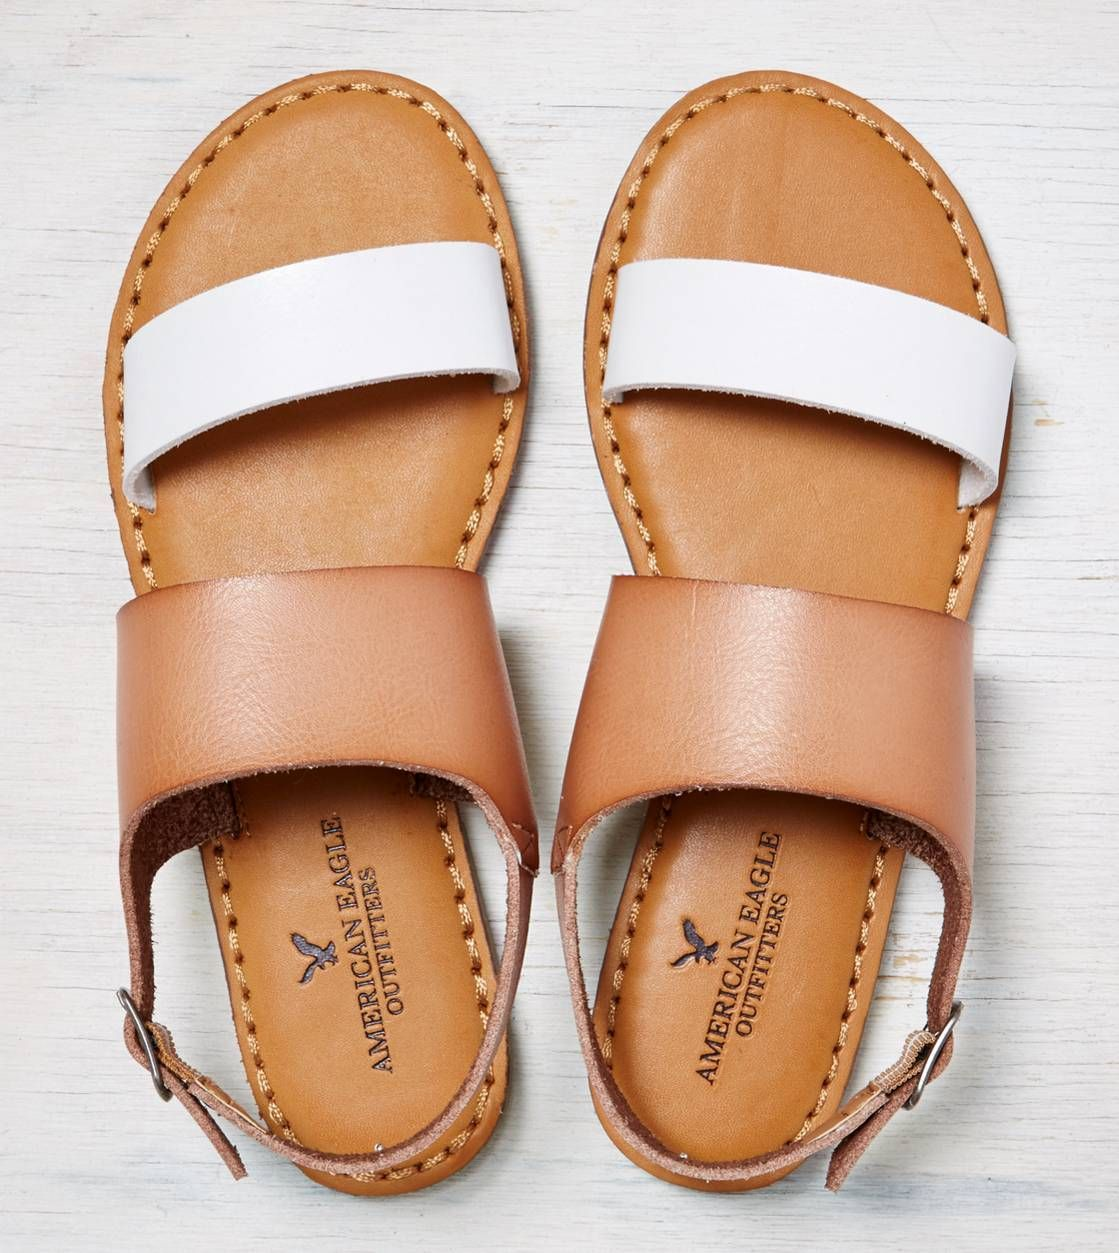 AEO Colorblocked Slingback Sandal | American eagle shoes